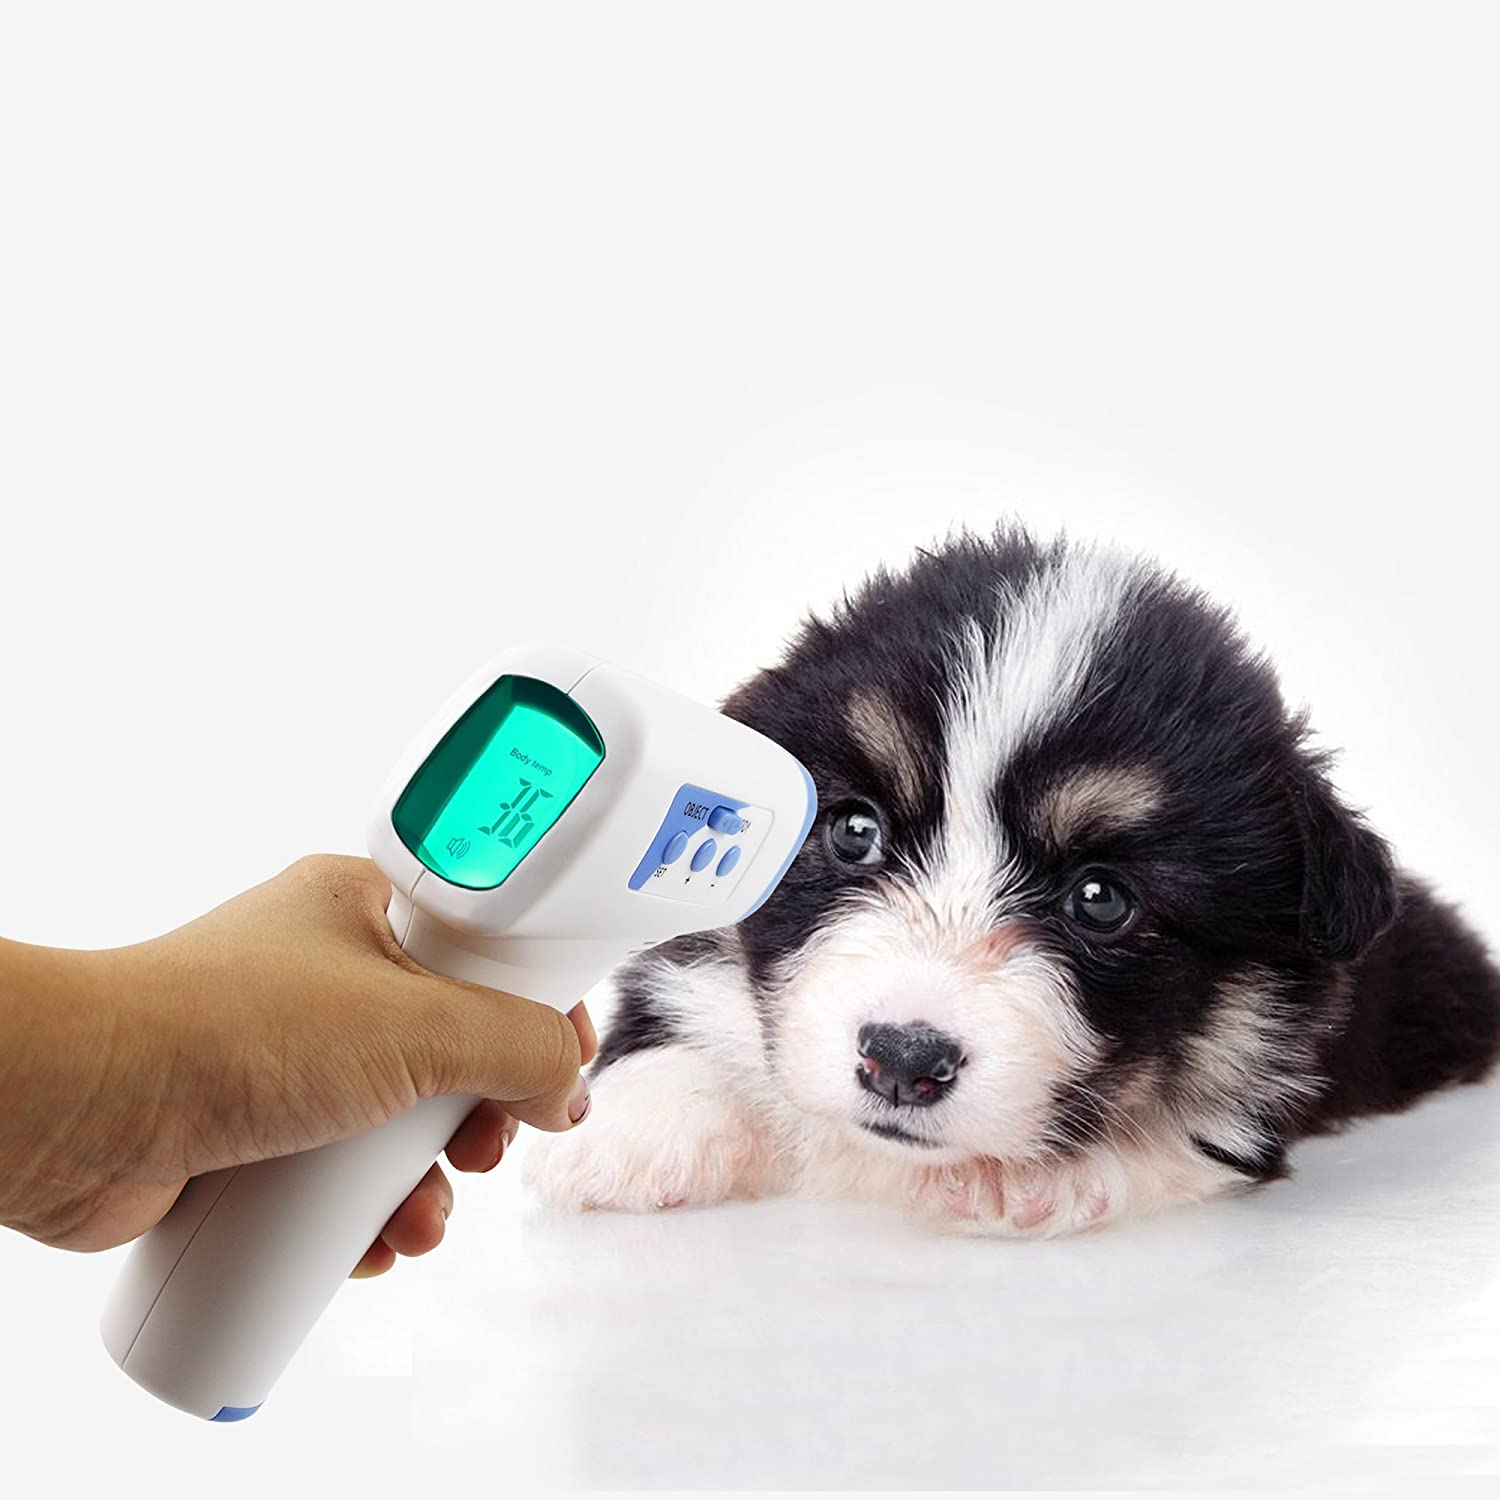 Weallnersse Digital Infrared Forehead Thermometer Gun For Baby Adult Multi Function Non Contact Body Kids Adu Adults Pets Object